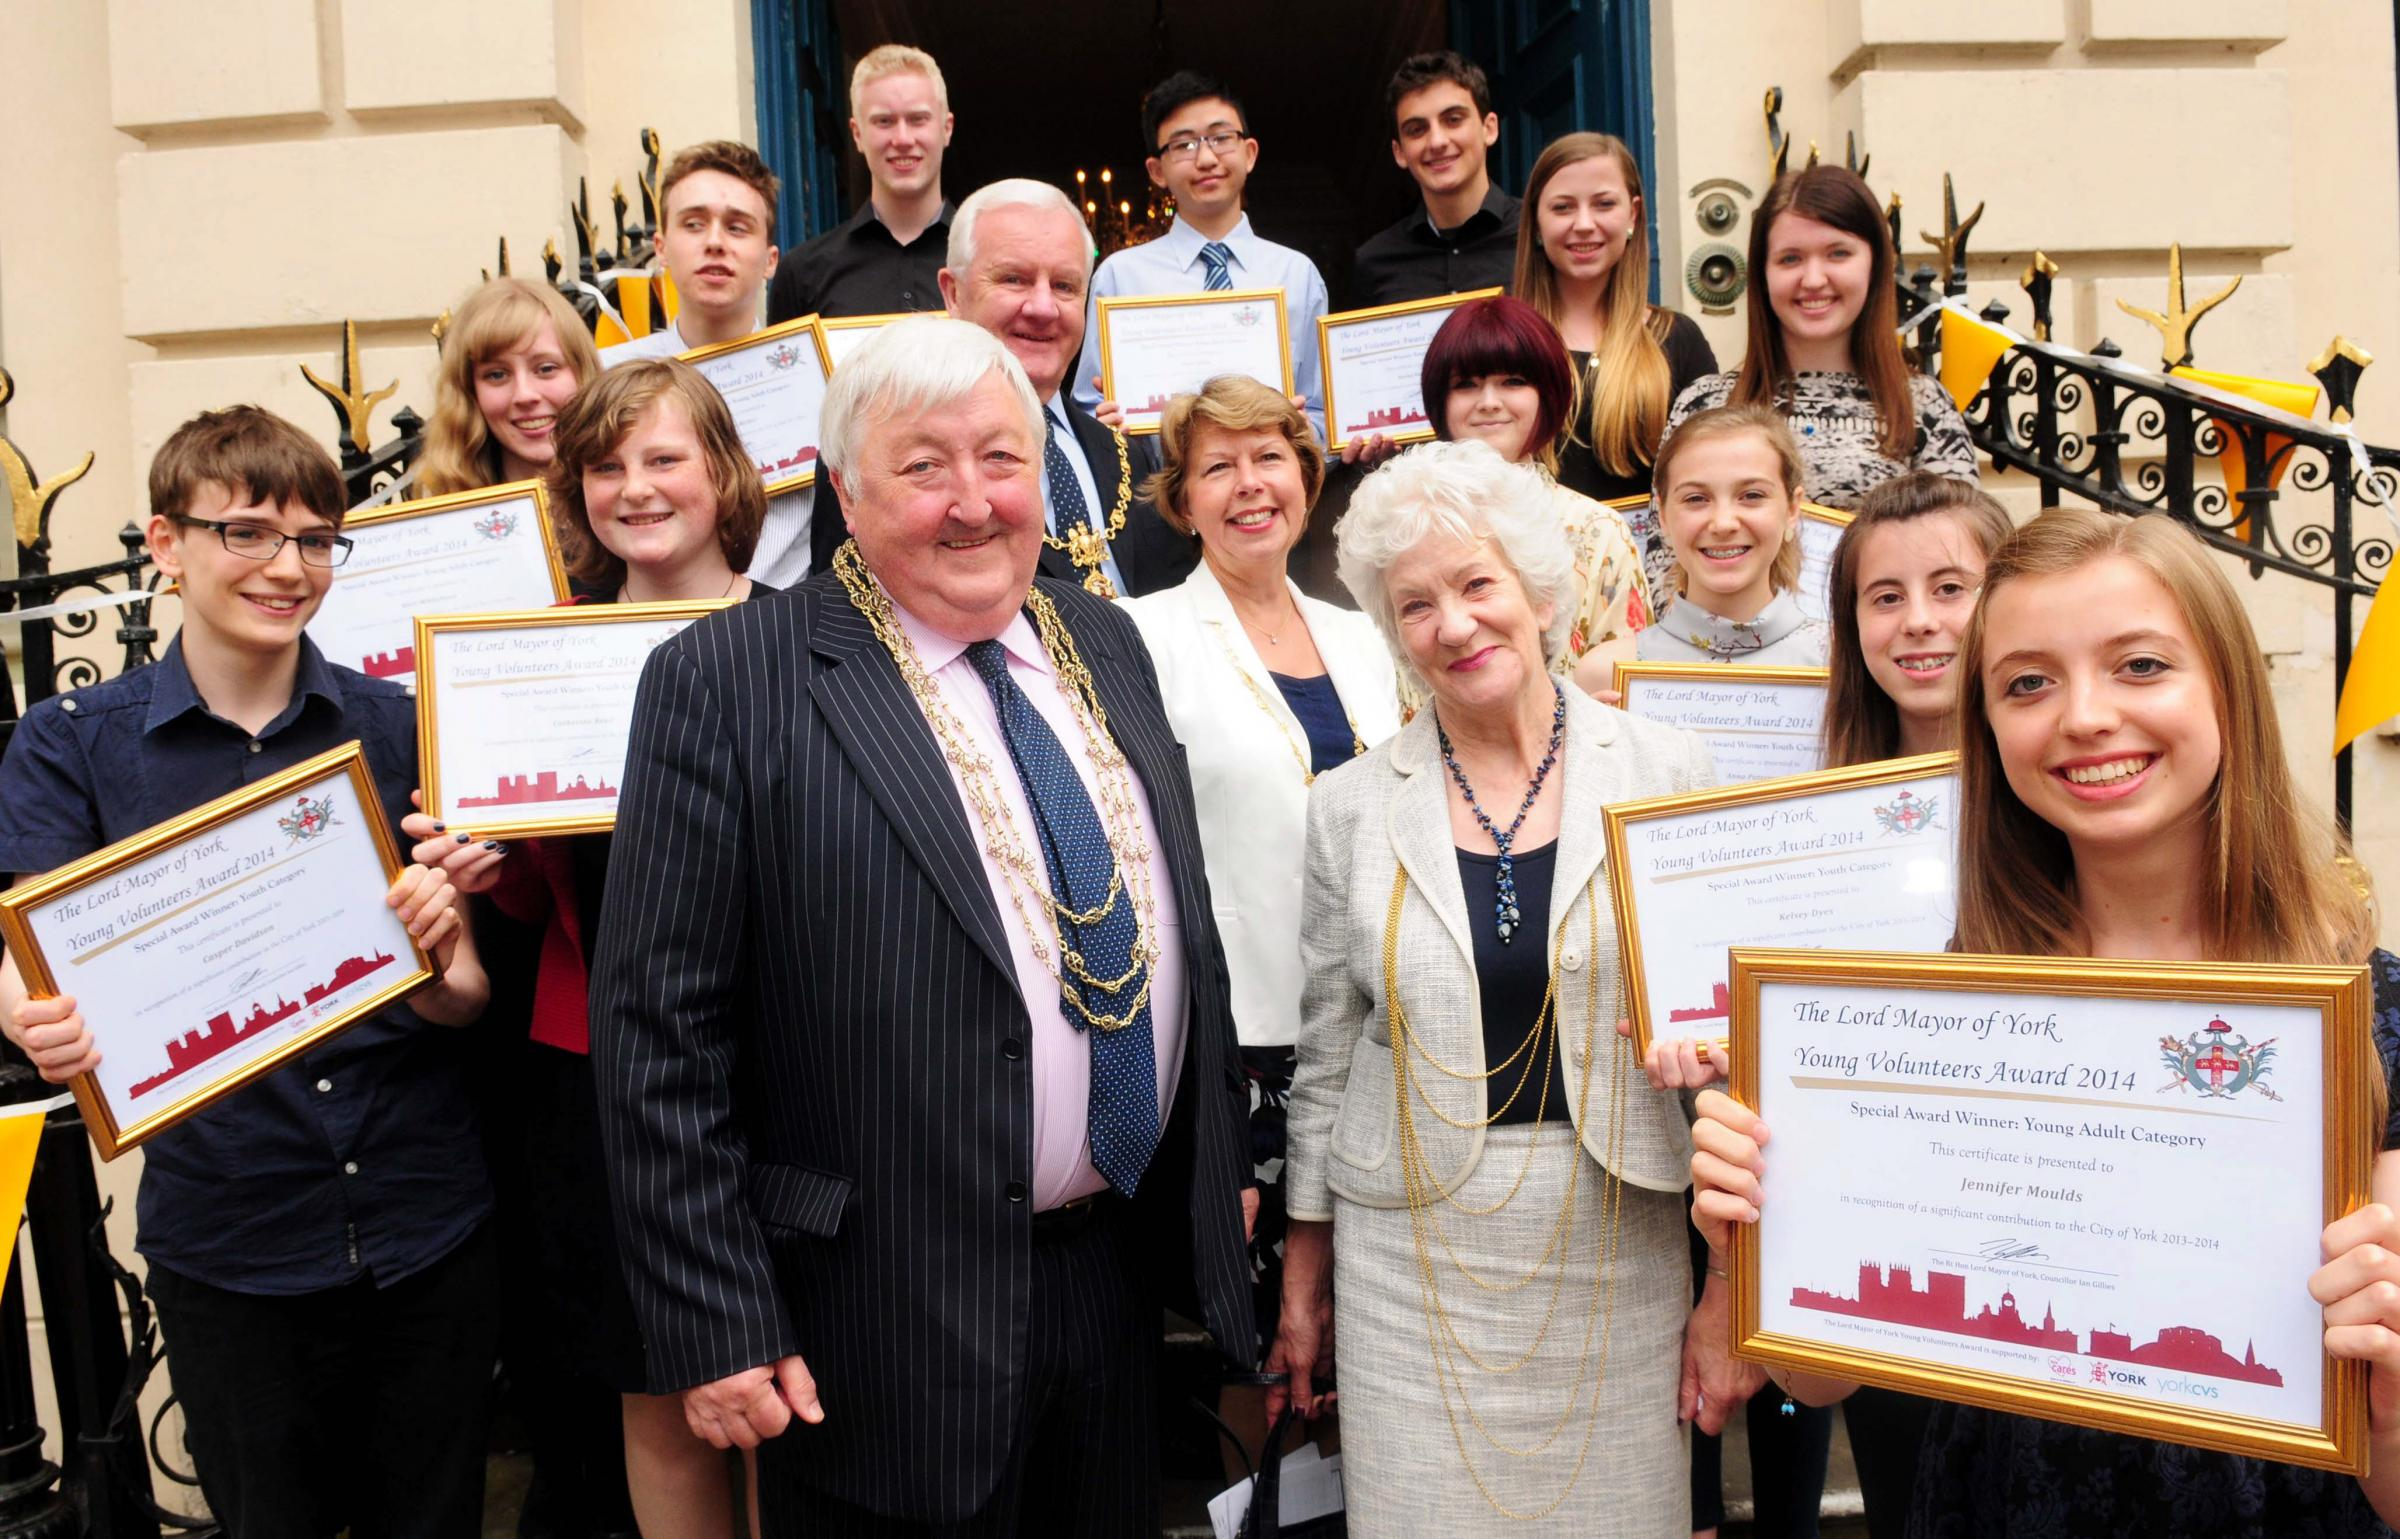 The civic Party including Lord Mayor Cllr Ian Gillies and his wife, Pat, are joined by Young Volunteers Award winners including Jennifer Moulds (front) on the steps of The Mansion House following the awards ceremony.